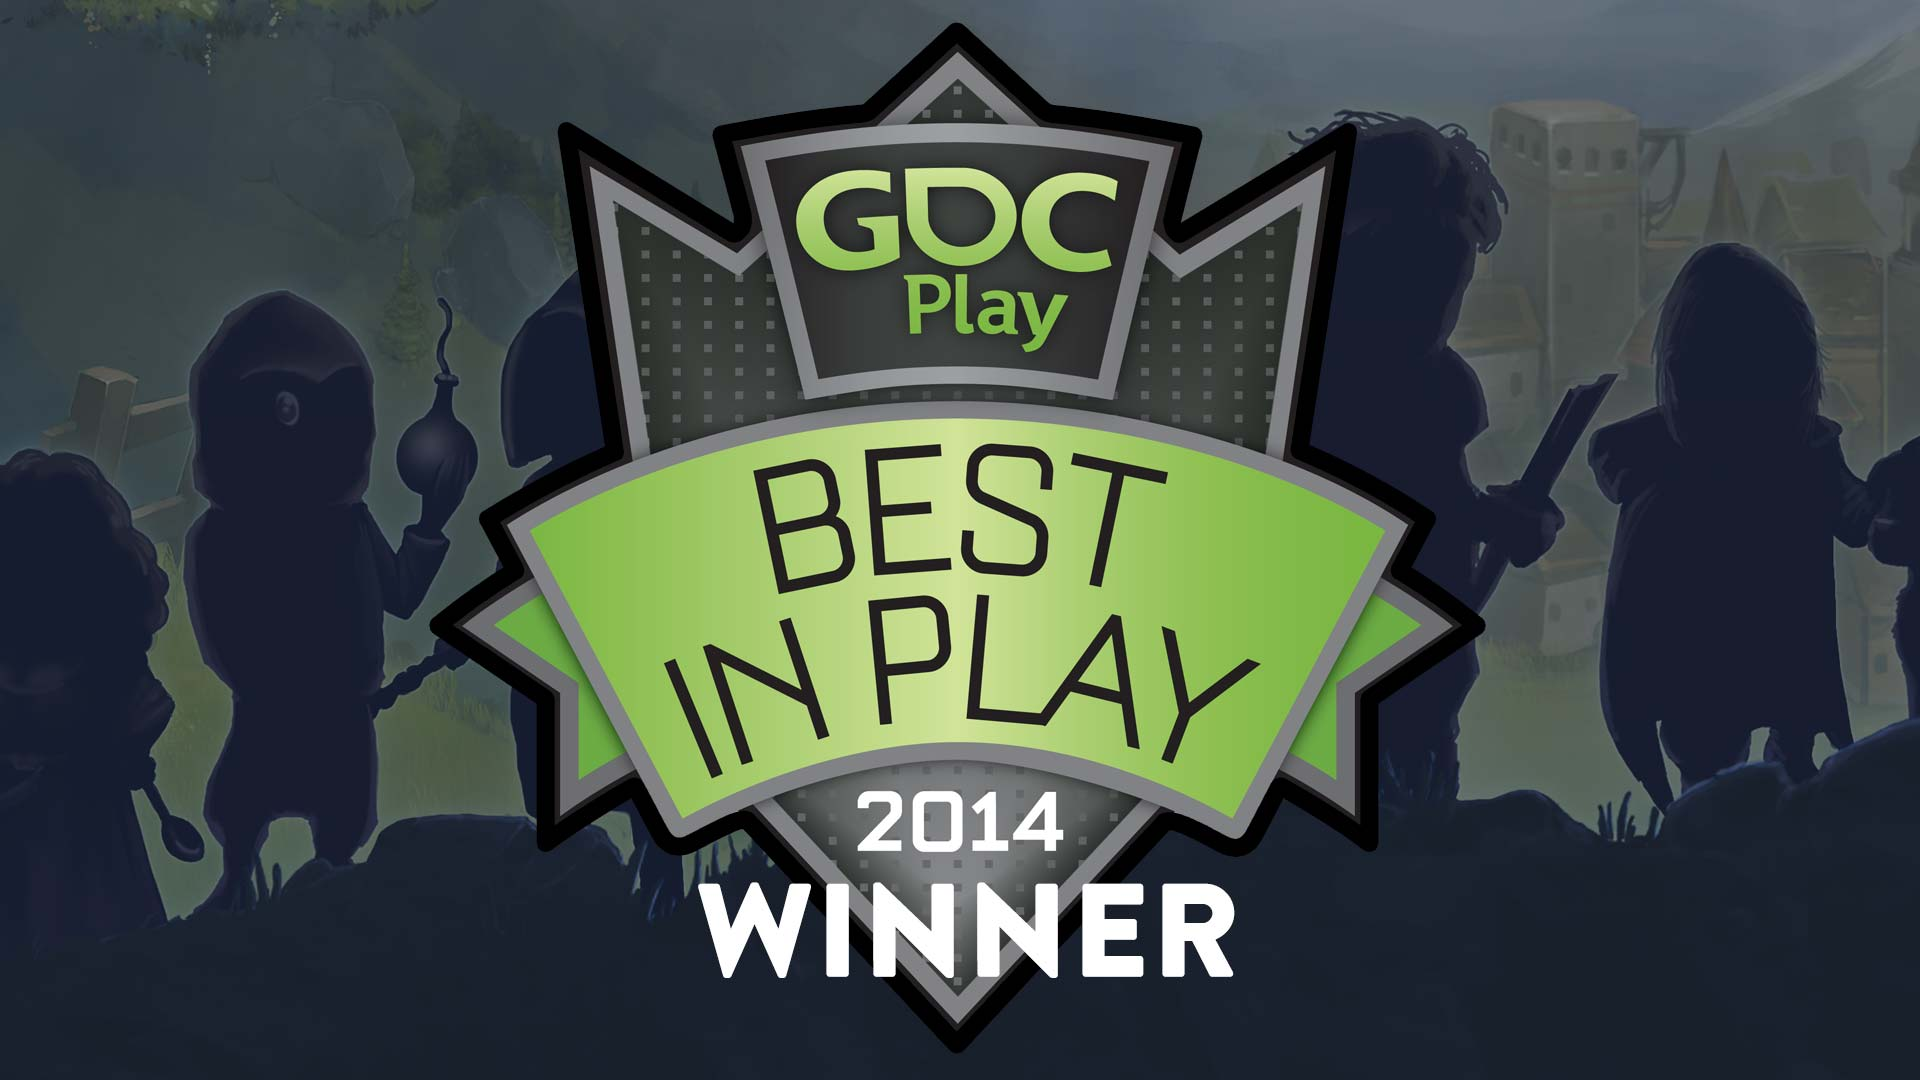 2014 - WINNERBEST IN PLAYfor